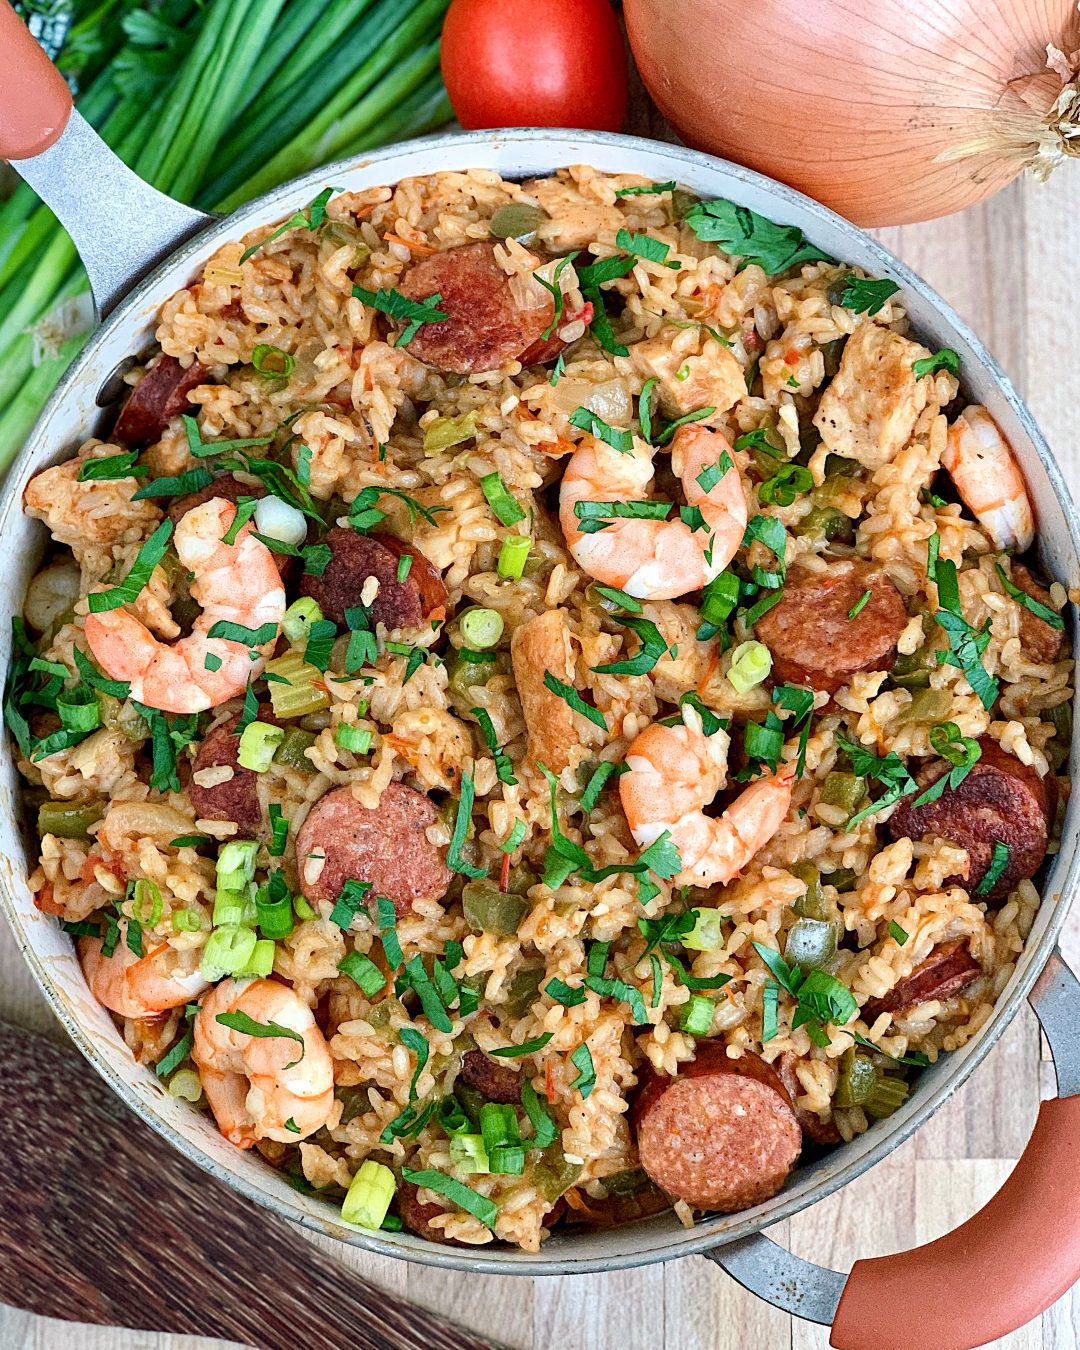 Easy One Pot Jambalaya with Shrimp, Chicken, and Sausage